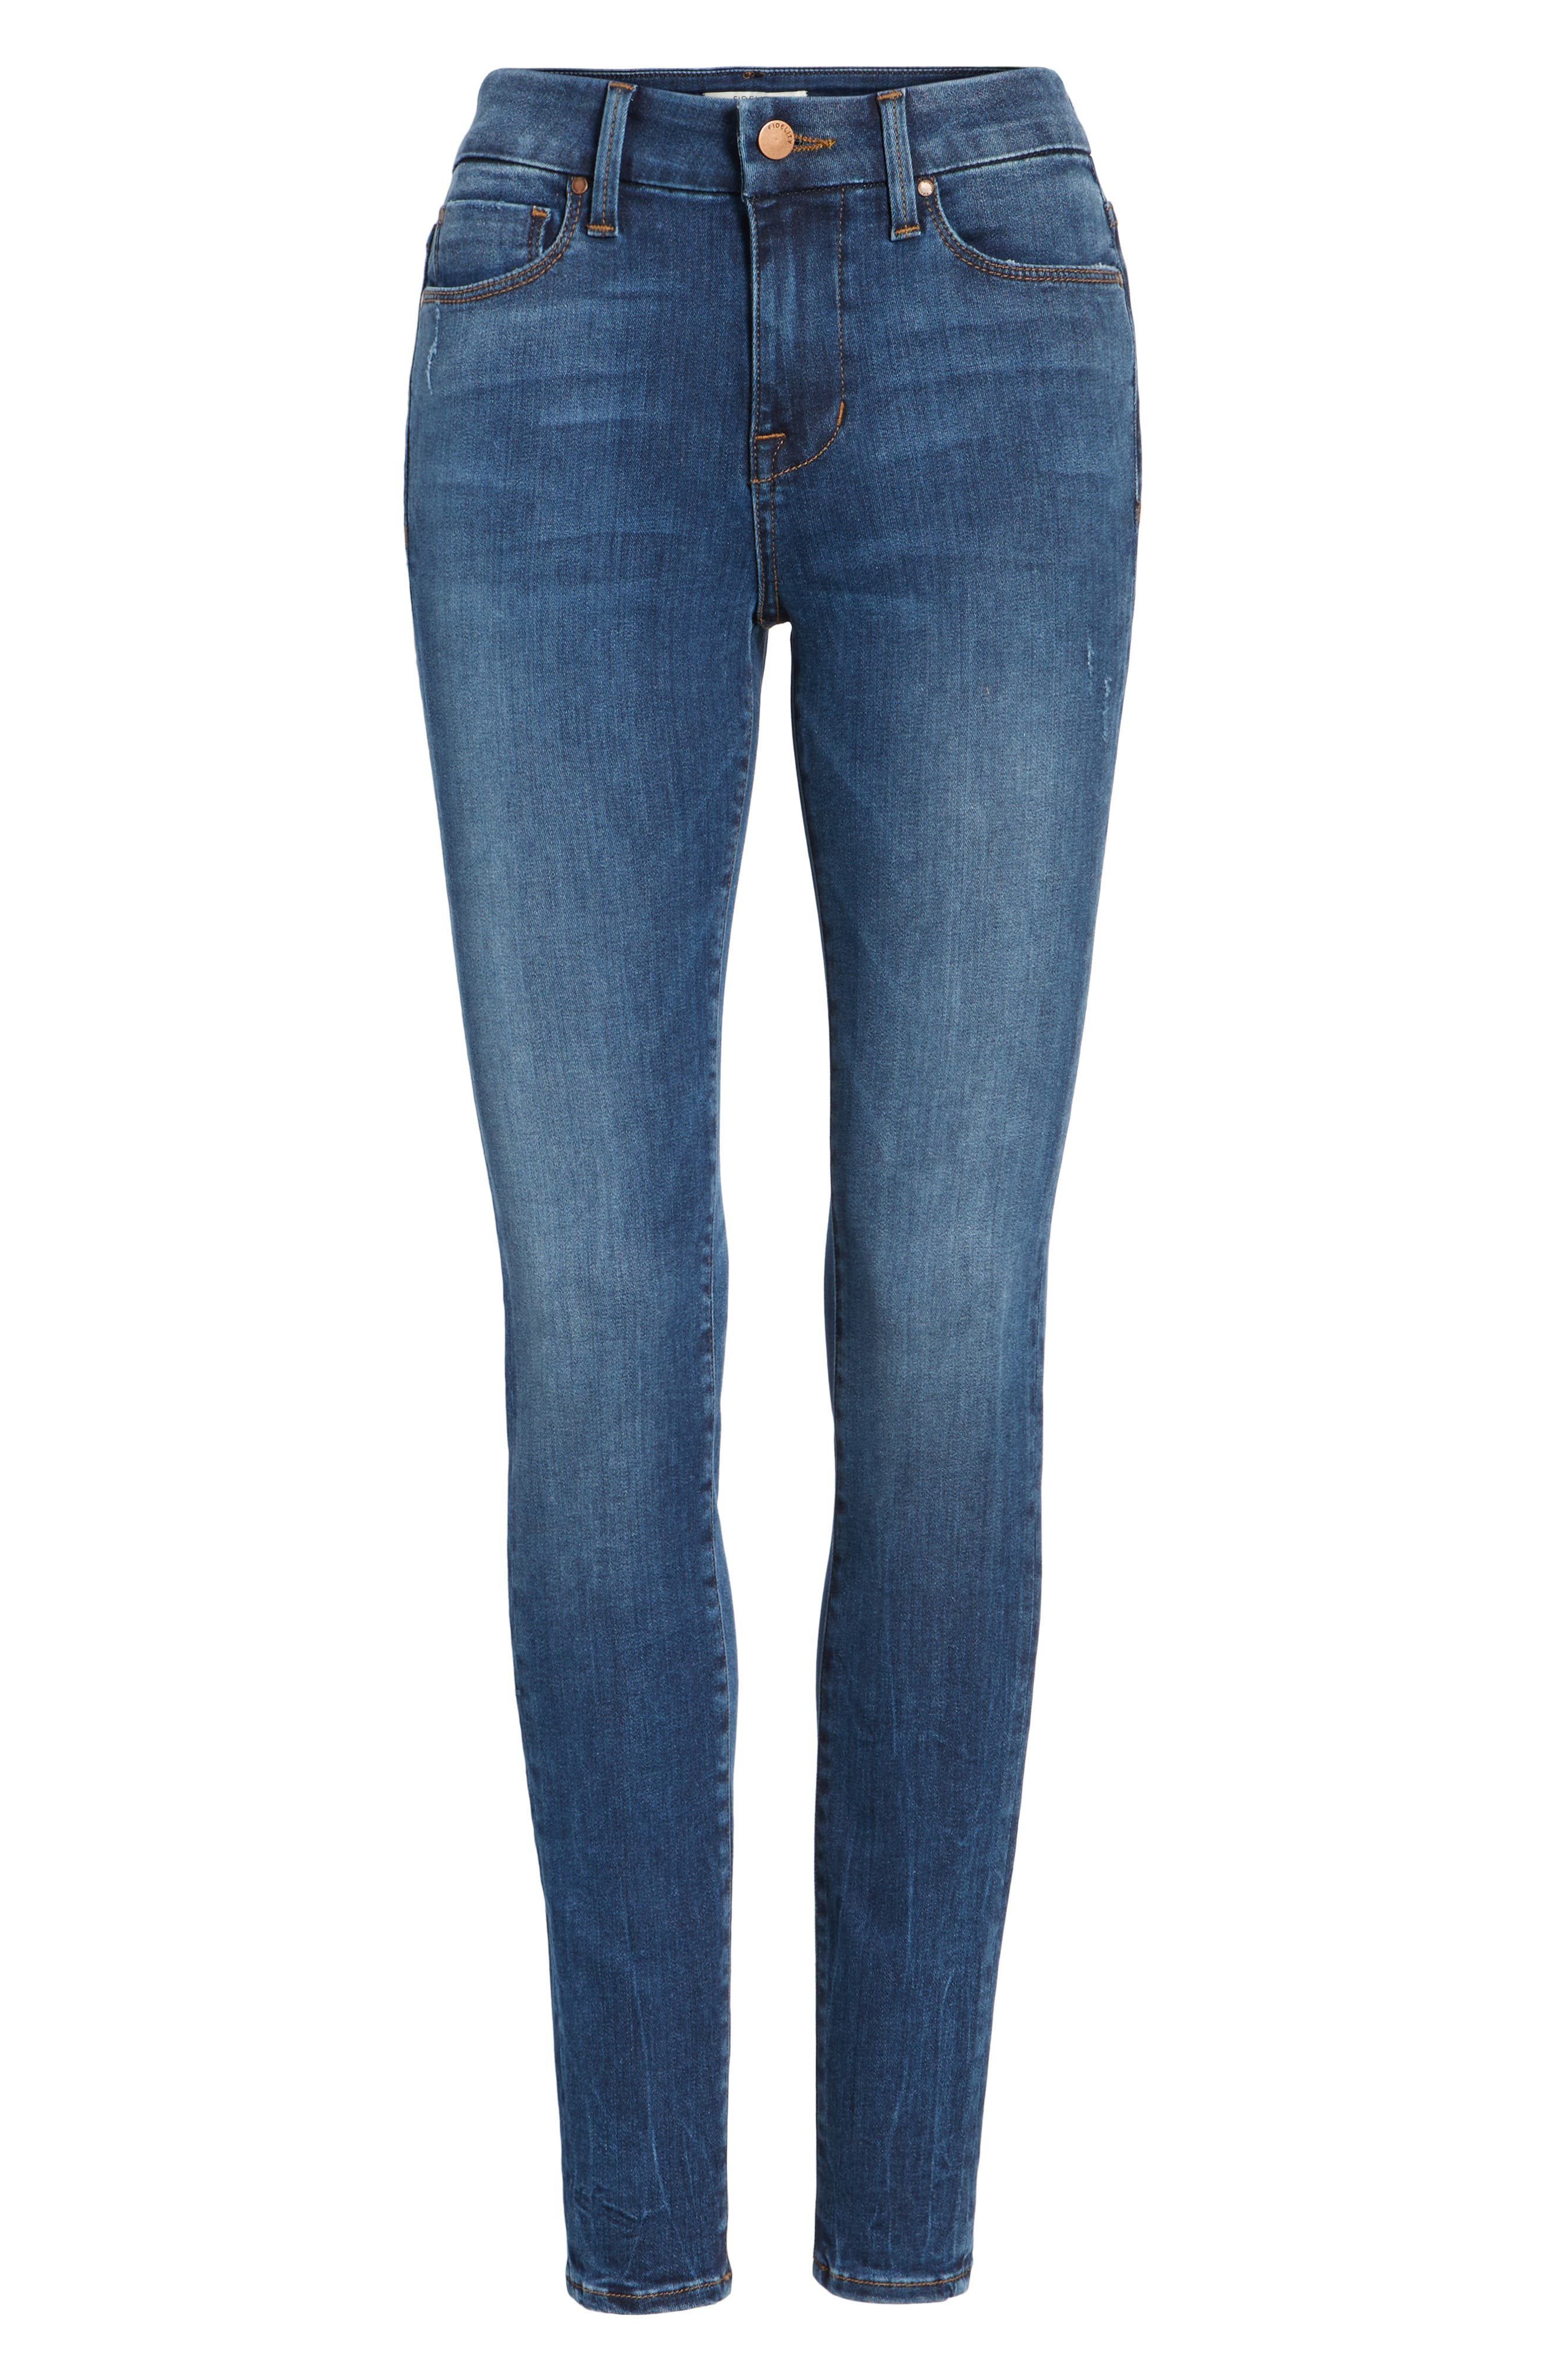 Belvedere Skinny Jeans,                             Alternate thumbnail 6, color,                             400